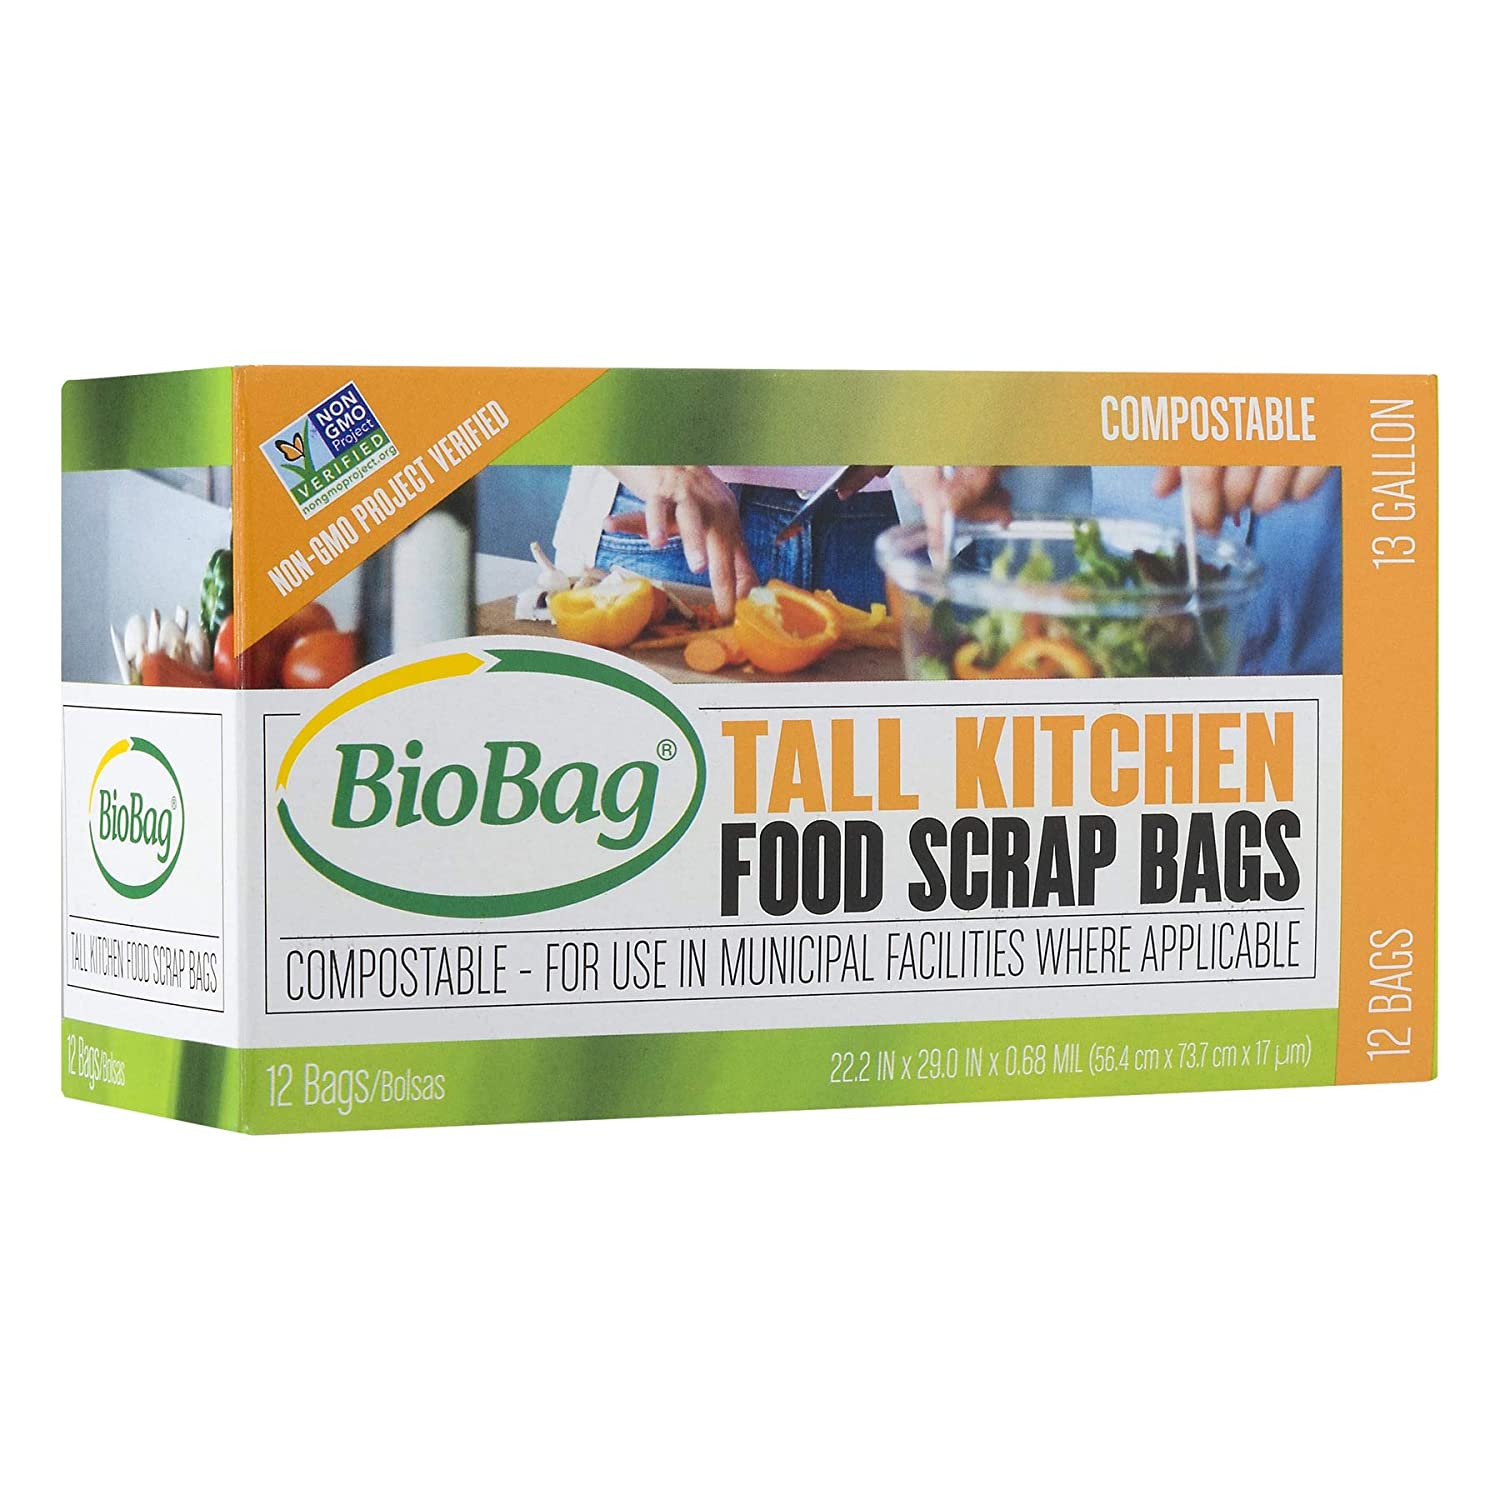 BioBag, The Original Compostable Bag, Kitchen Food Scrap Bags, ASTMD6400 Certified 100% Compostable Bags, Biodegradable Products Institute & VINCOTTE ...